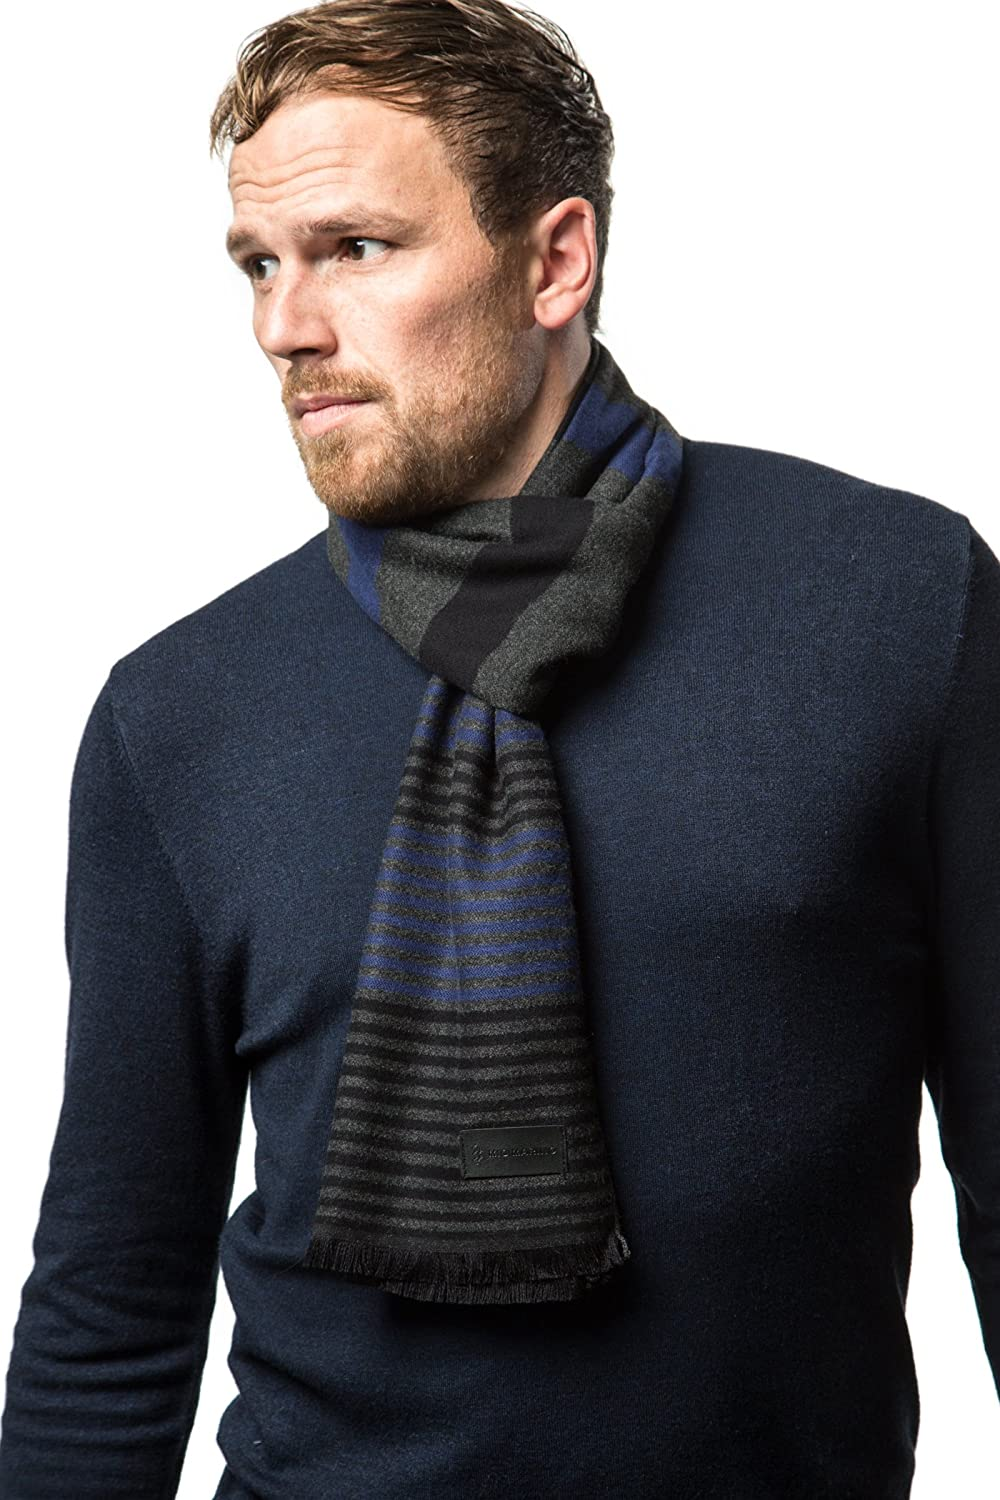 Marino's Winter Cashmere Feel Men Scarf,100% Cotton Fashion Scarves, In Elegant Gift Box MS039-07-BGD